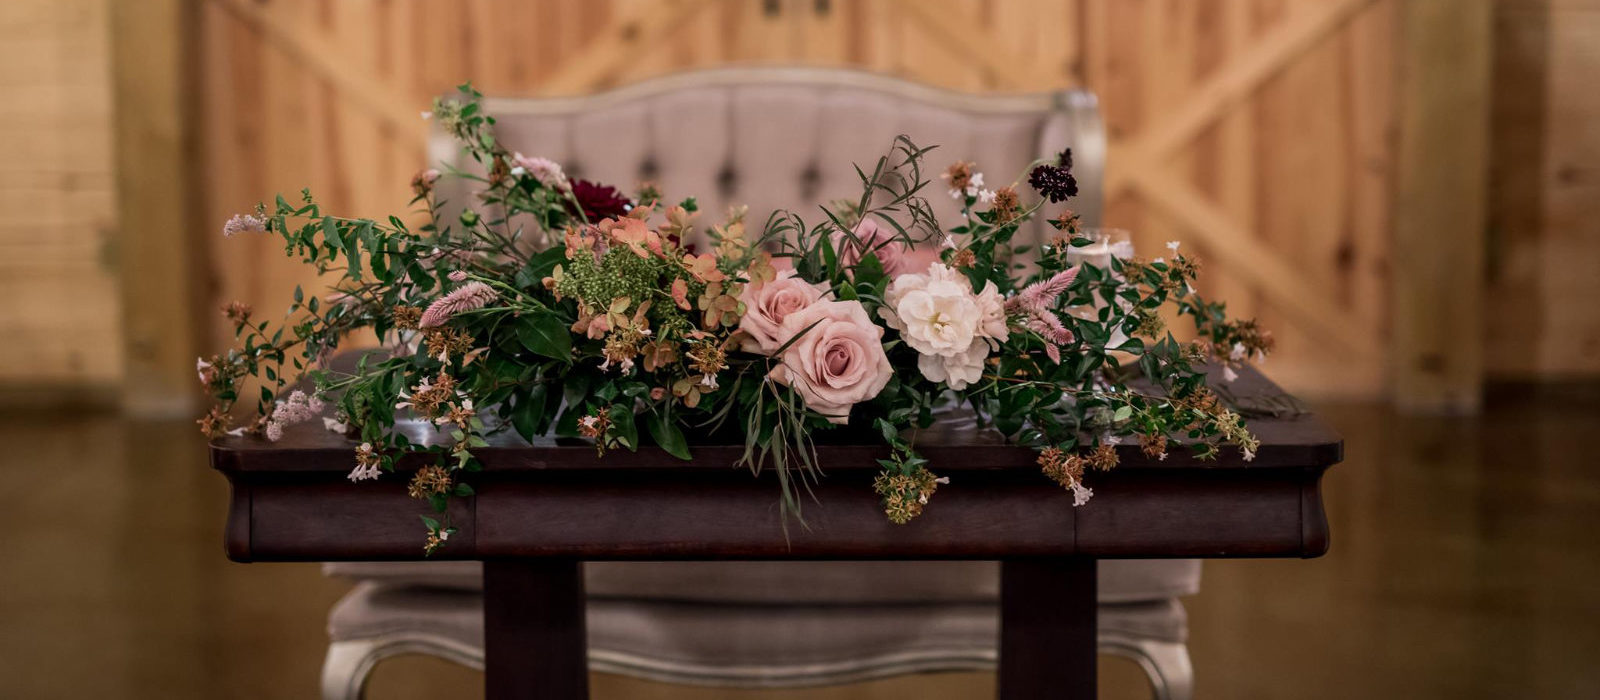 LindseyHinkleyphotography-flowers-on-table